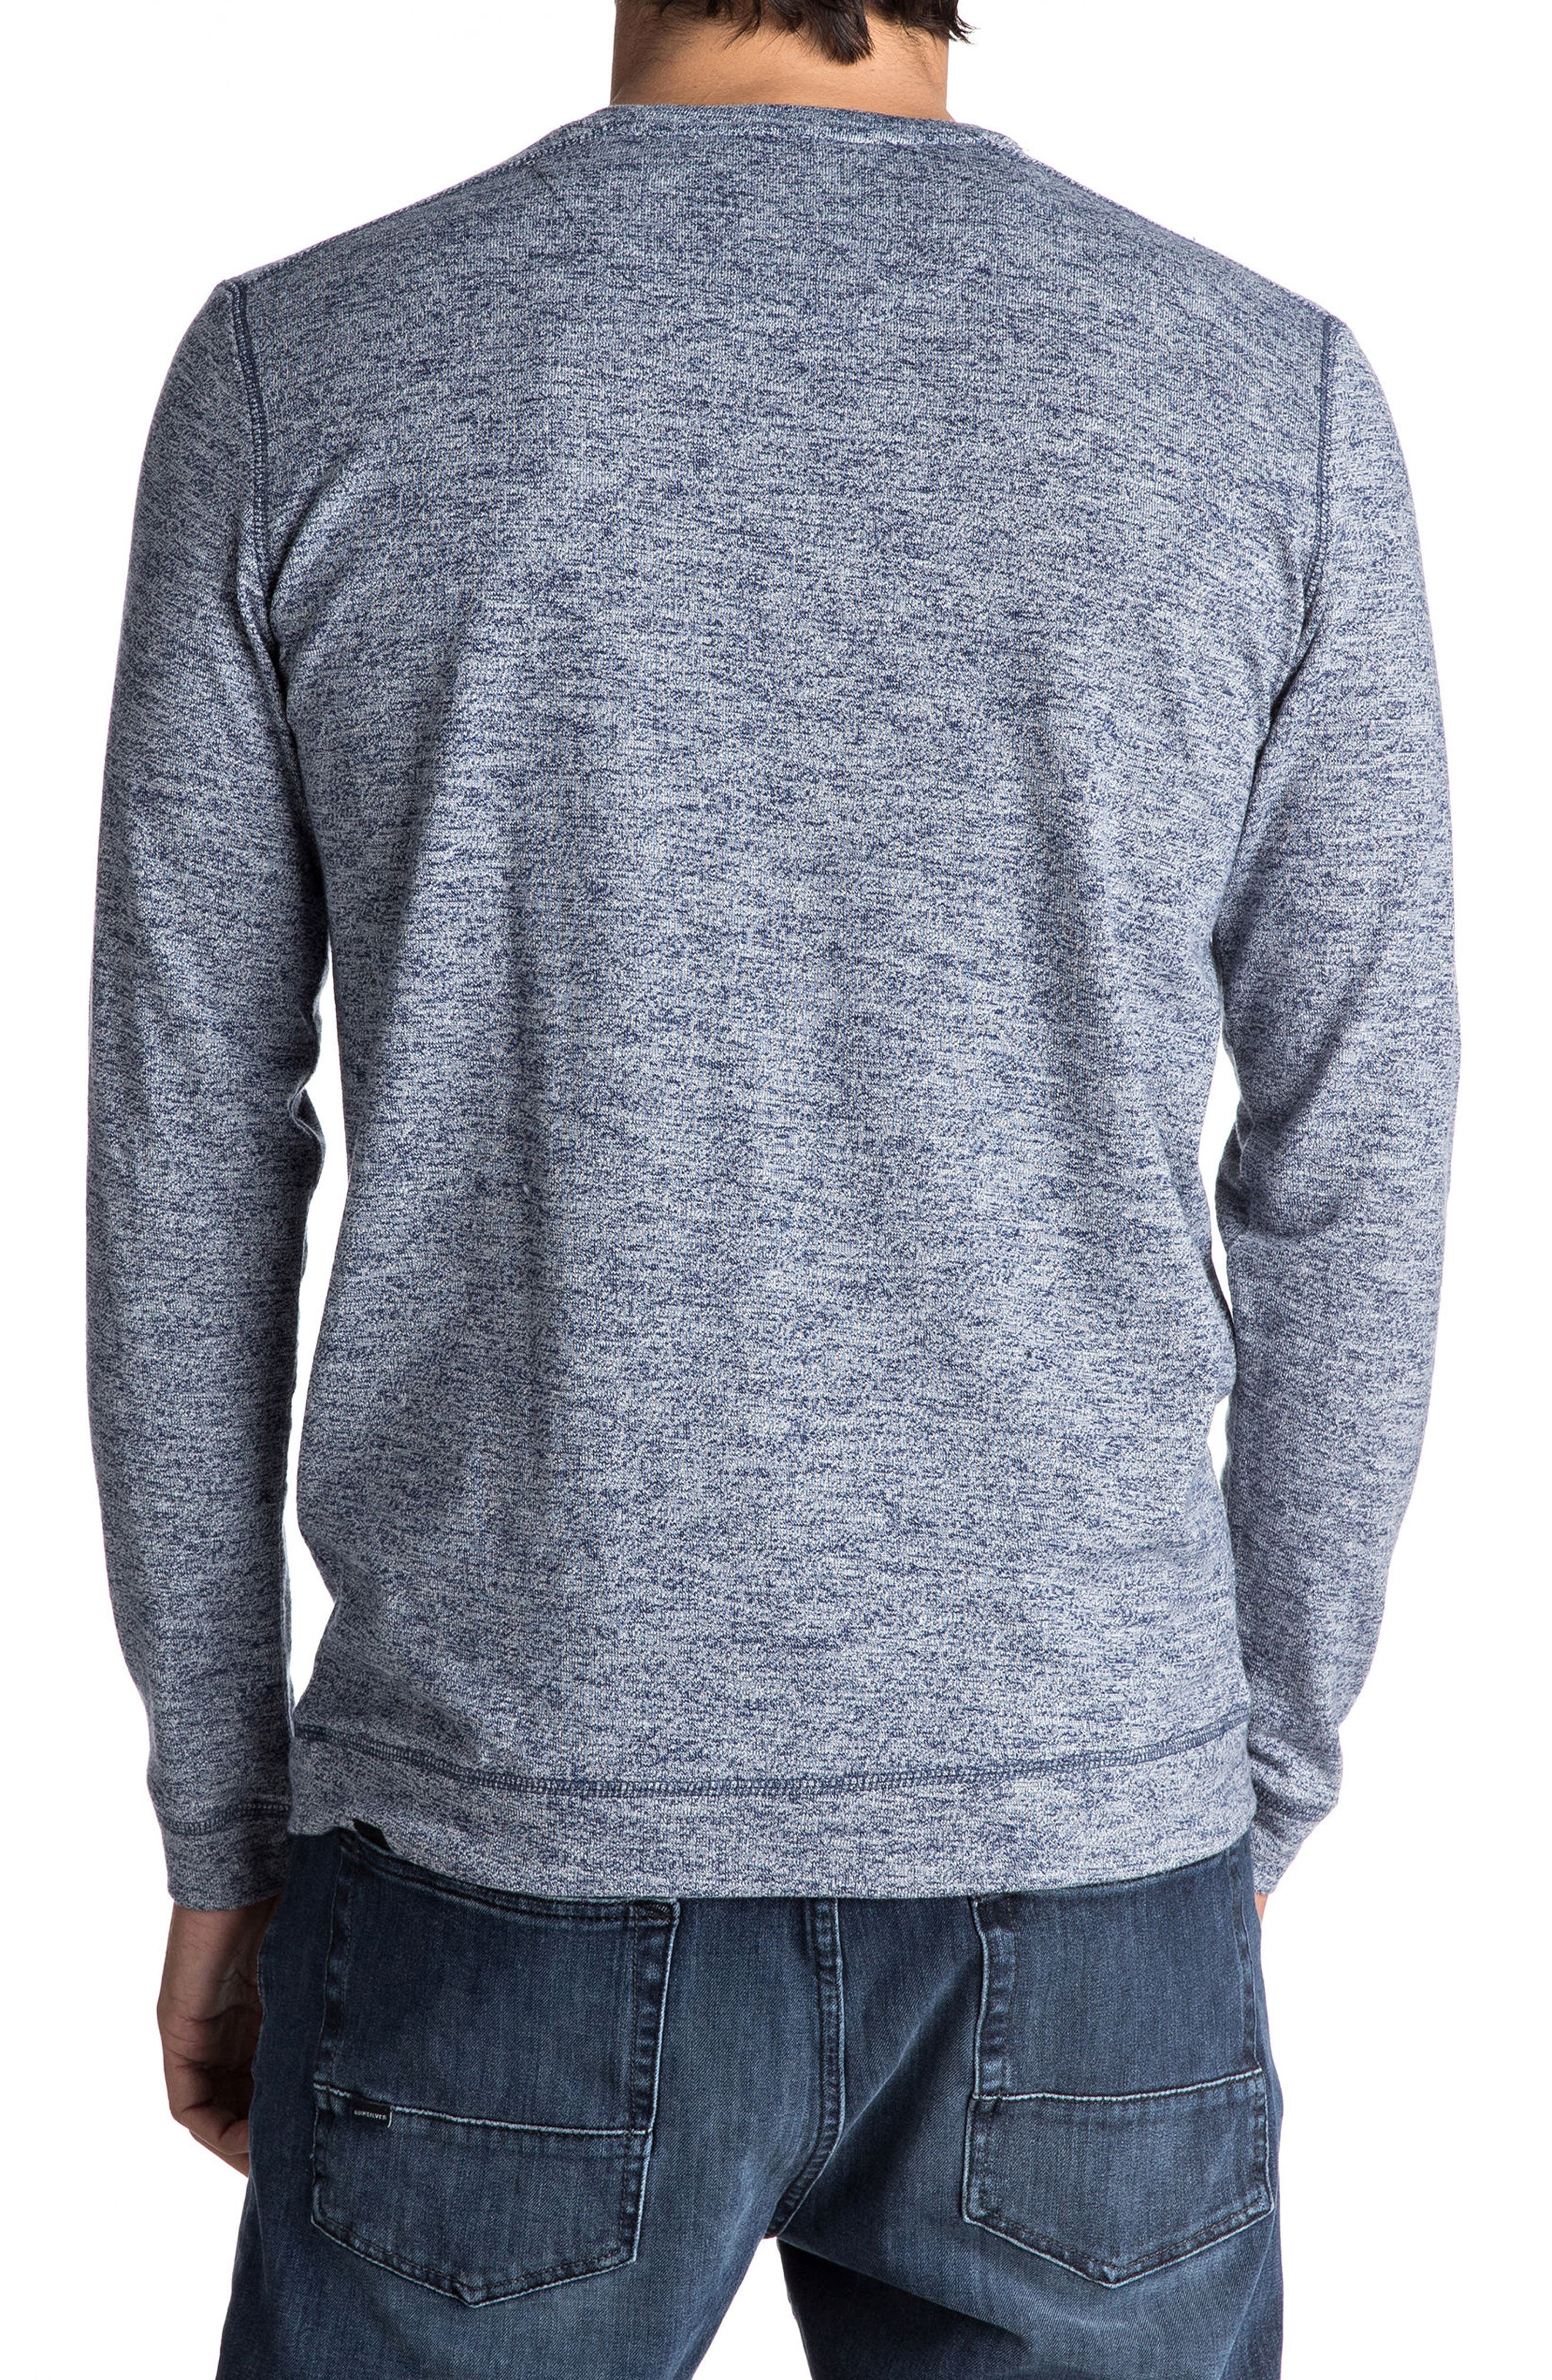 Lindow Marled Sweater,                             Alternate thumbnail 5, color,